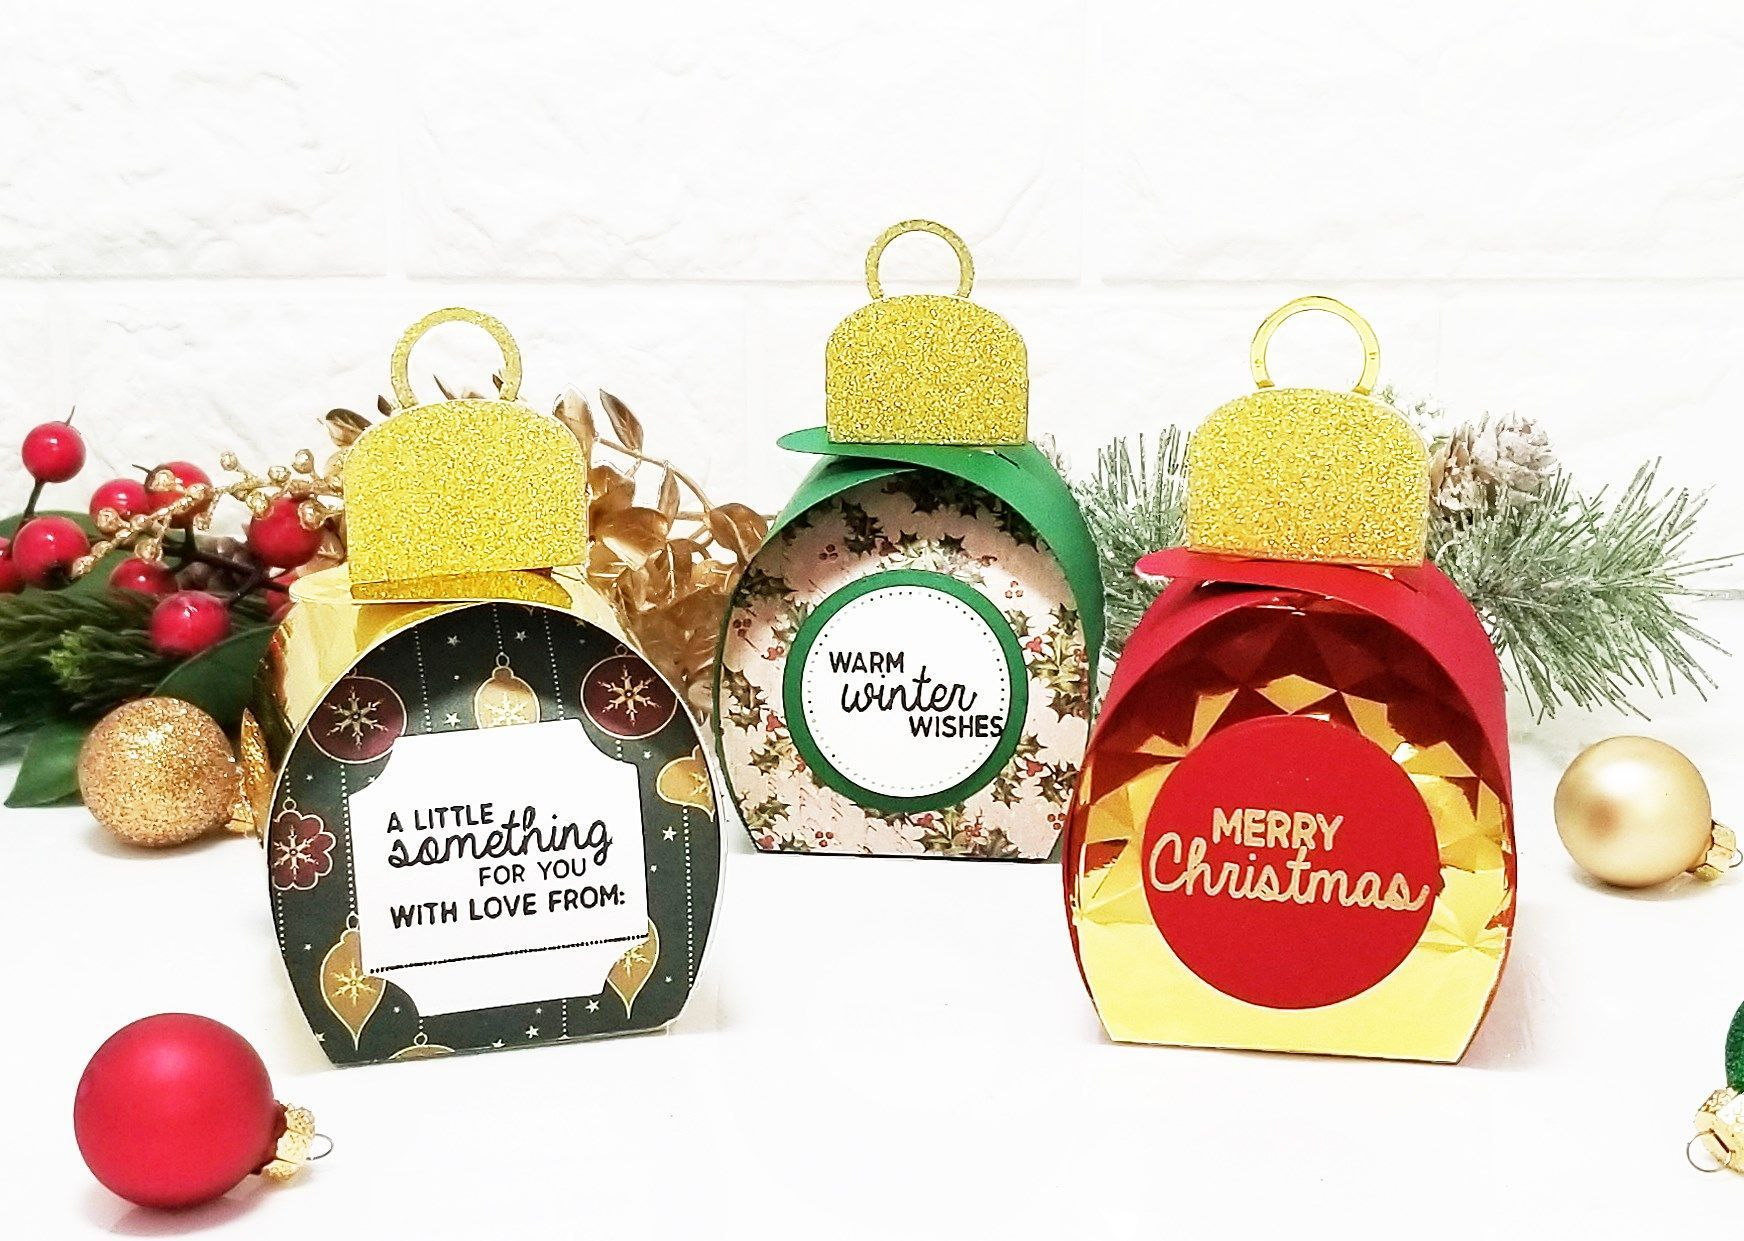 Festive Giftables Die Sets by Crafter's Companion in 2020 | Christmas  treats holders, Crafters companion, Christmas cards